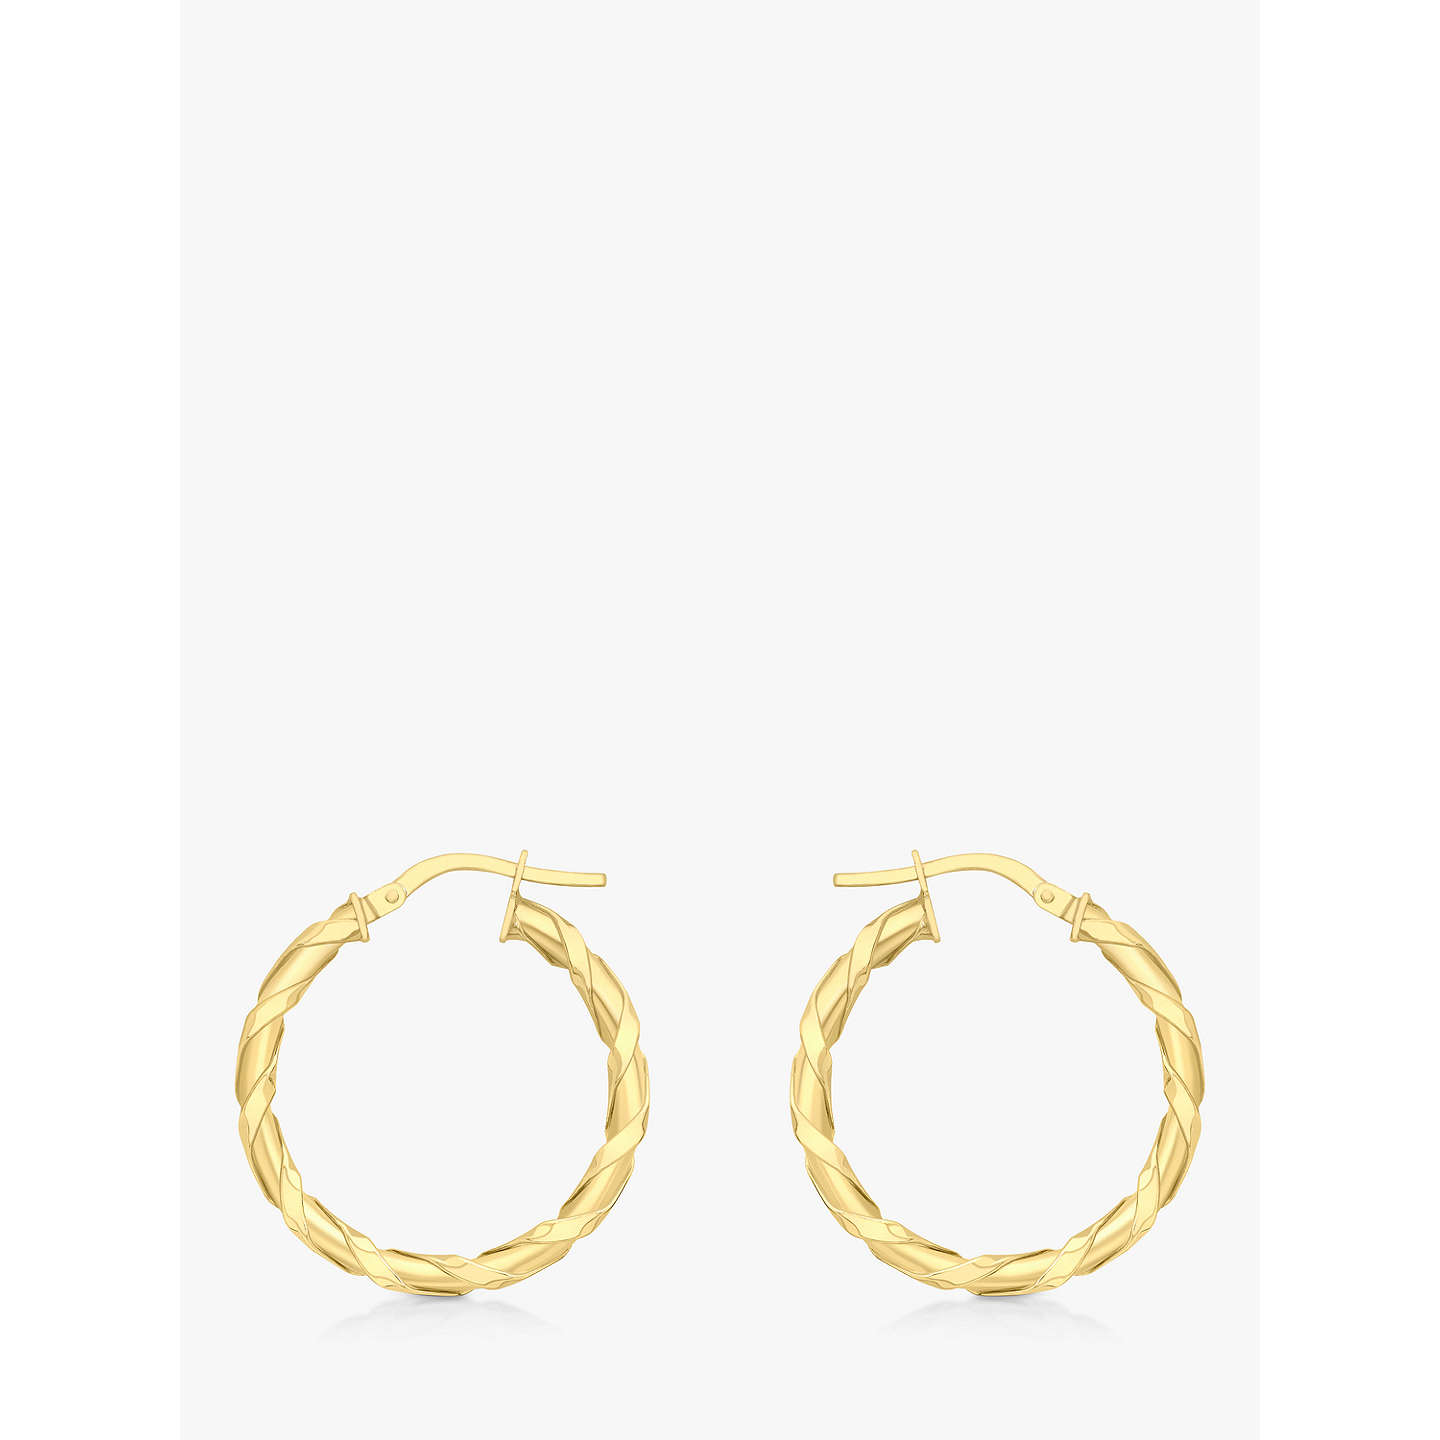 Ibb 9ct Gold Twist Creole Earrings Online At Johnlewis